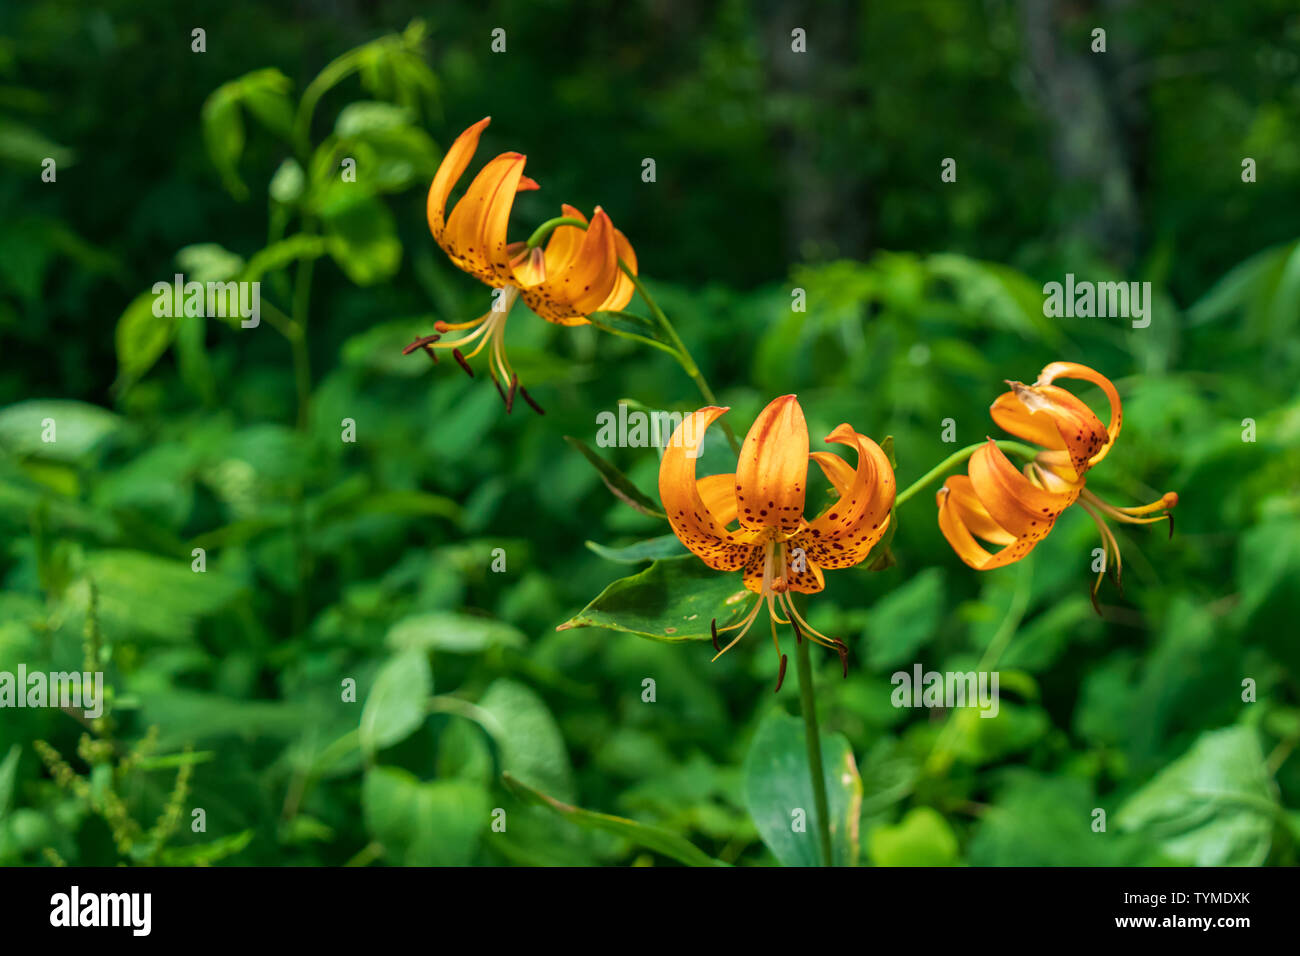 Turk's Cap Lily close-up Stock Photo